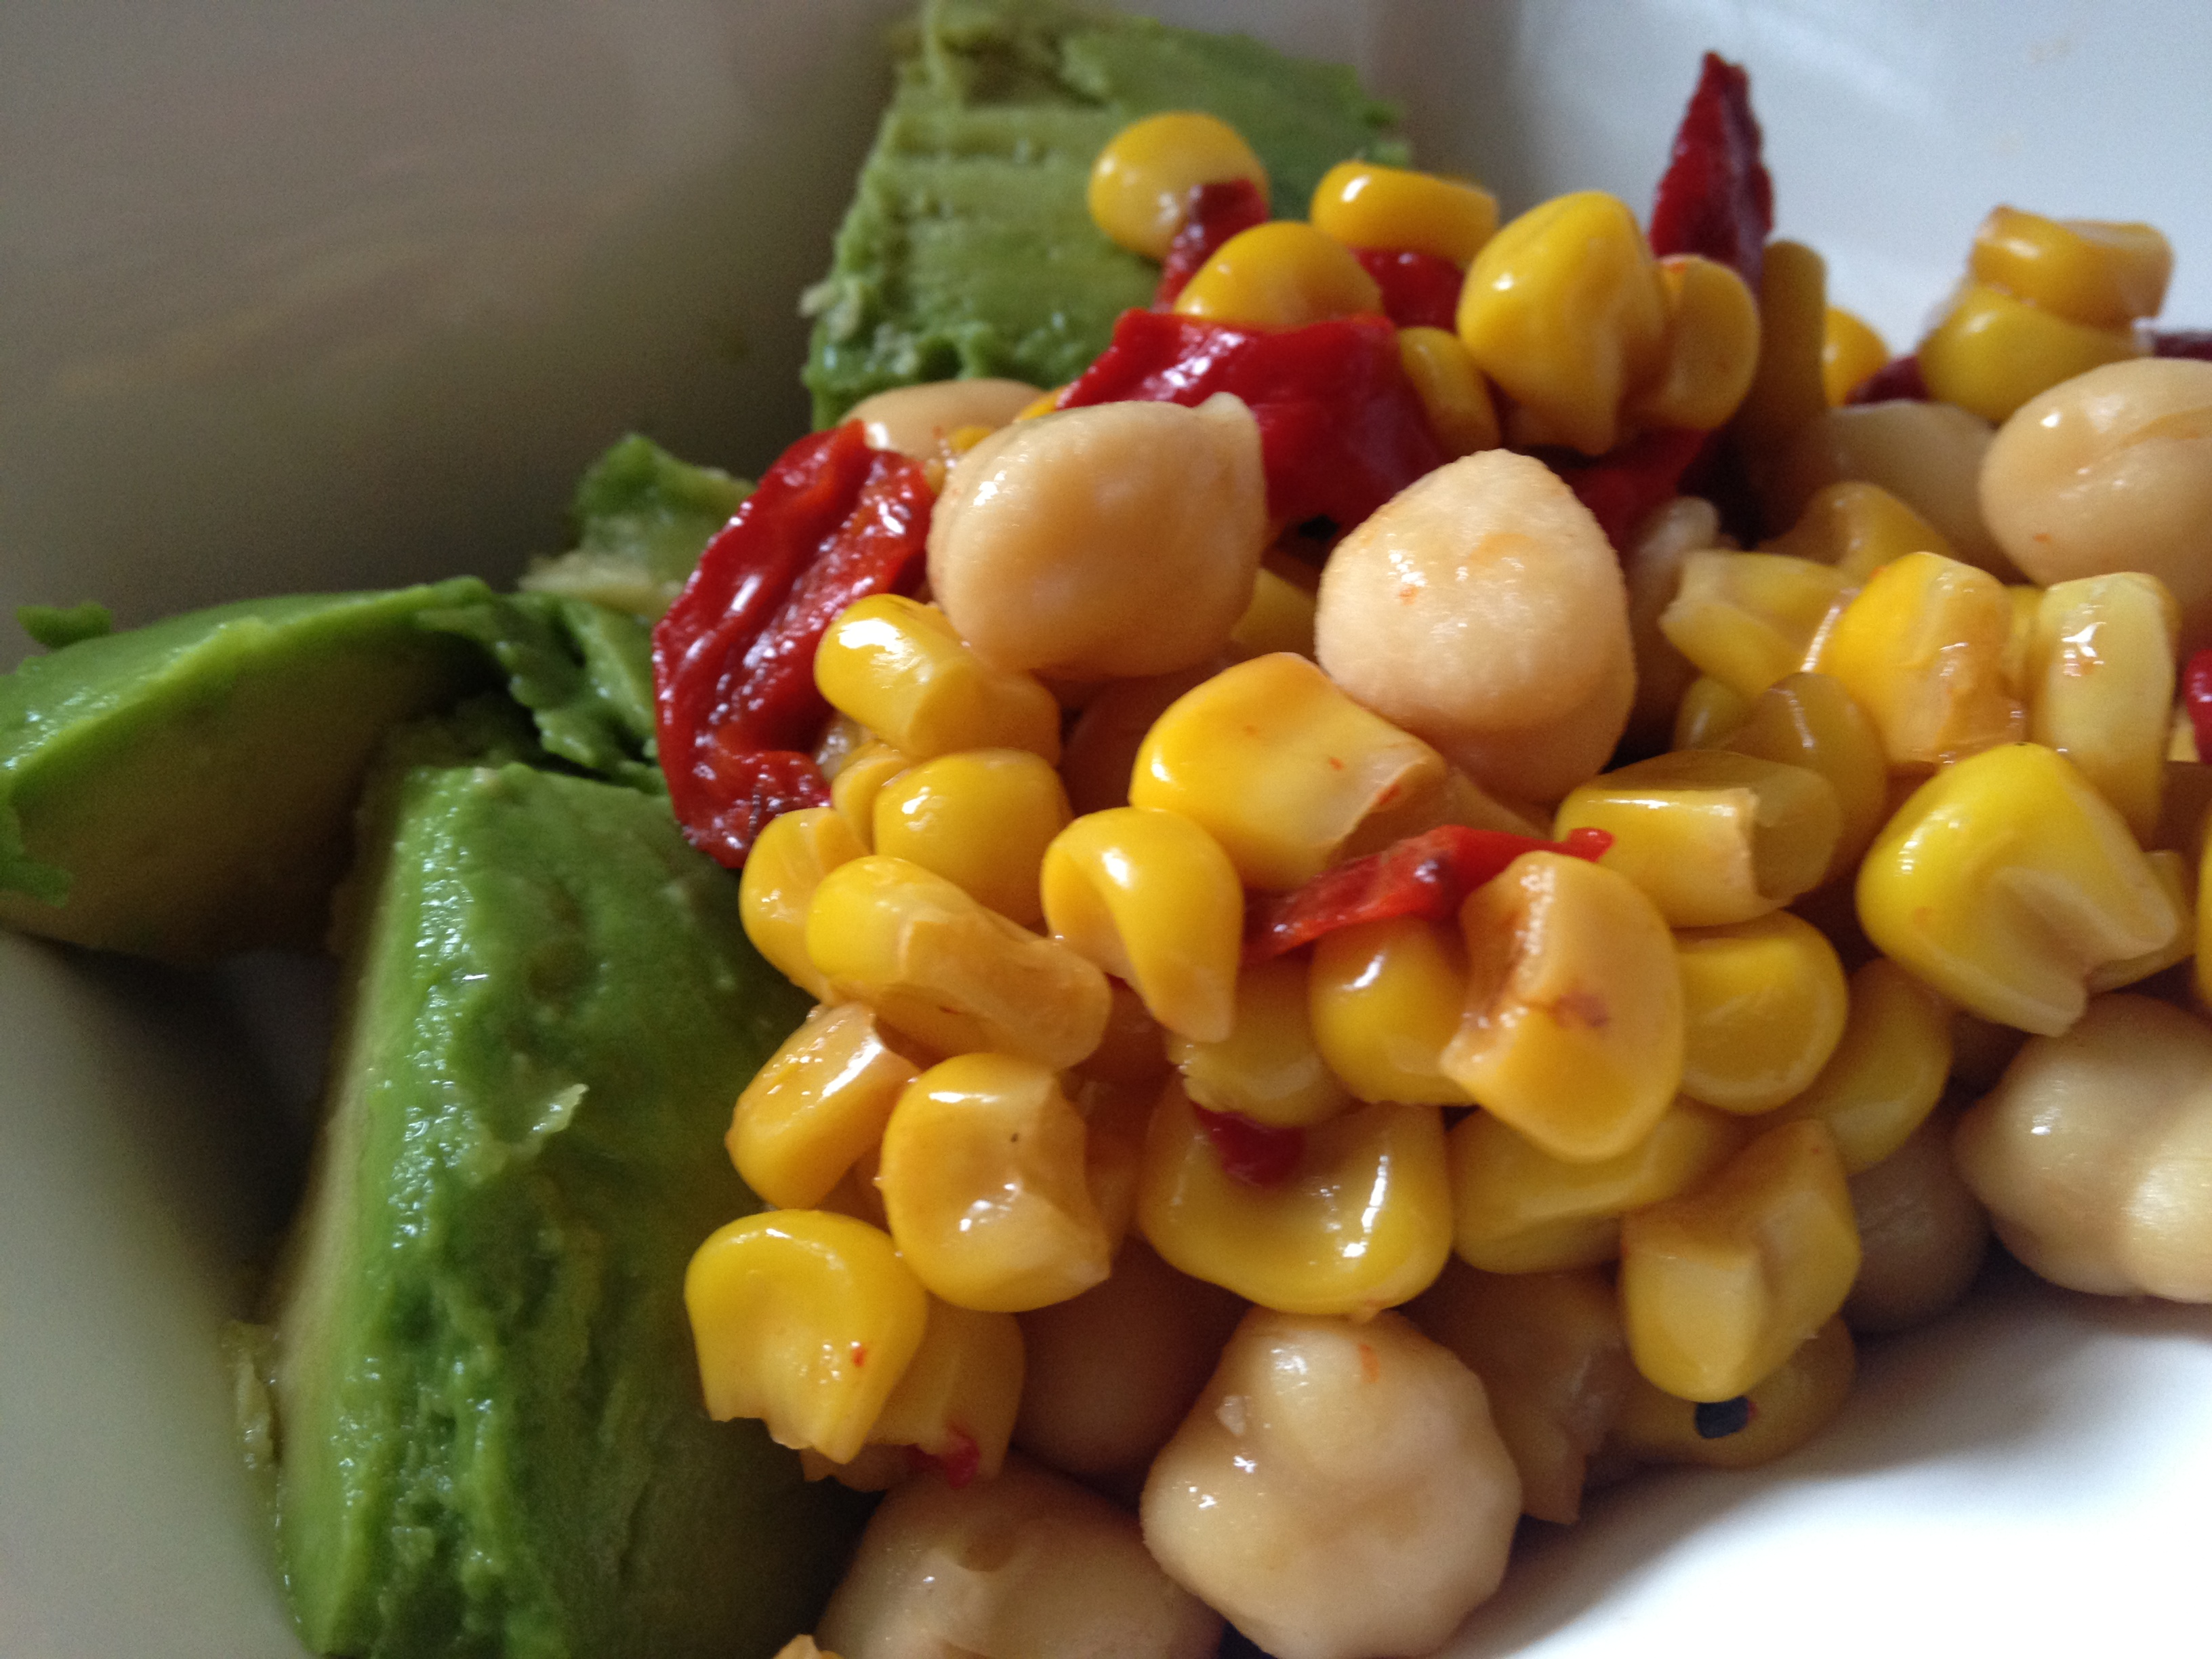 Corn and red pepper with avocado and chick peas.